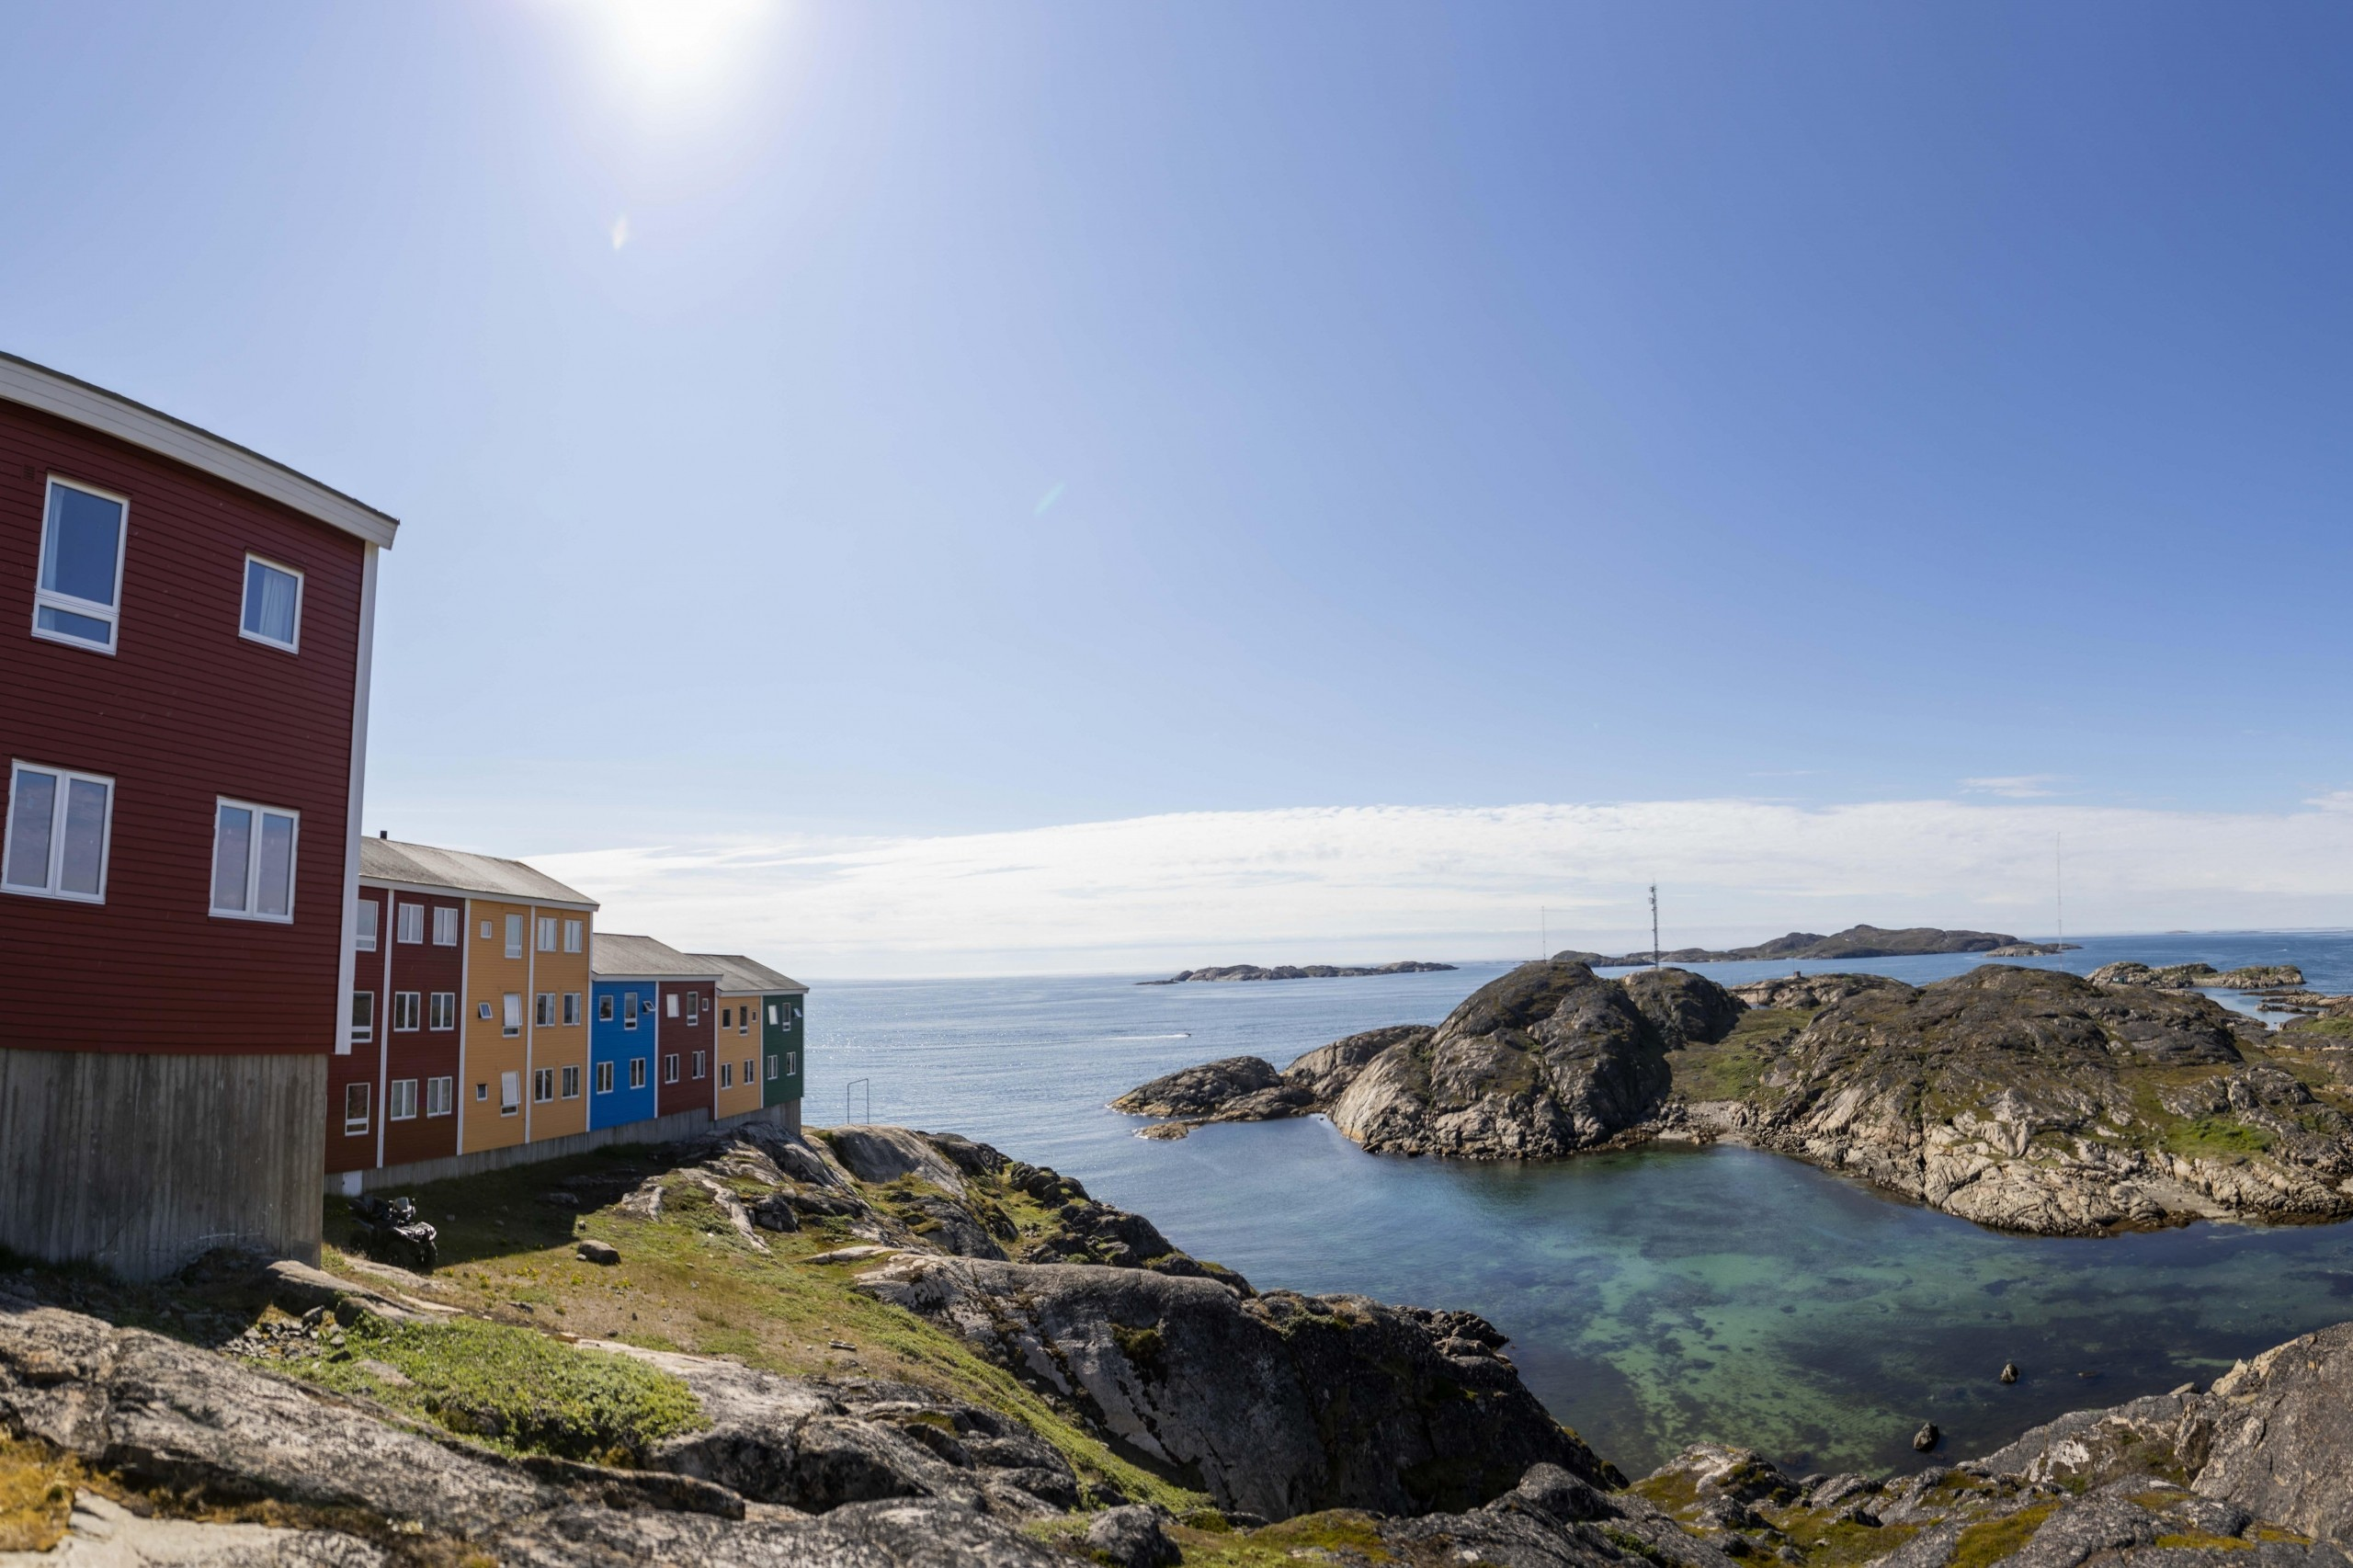 Colourful Houses View in Sisimiut. Photo by Aningaaq R Carlsen - Visit Greenland